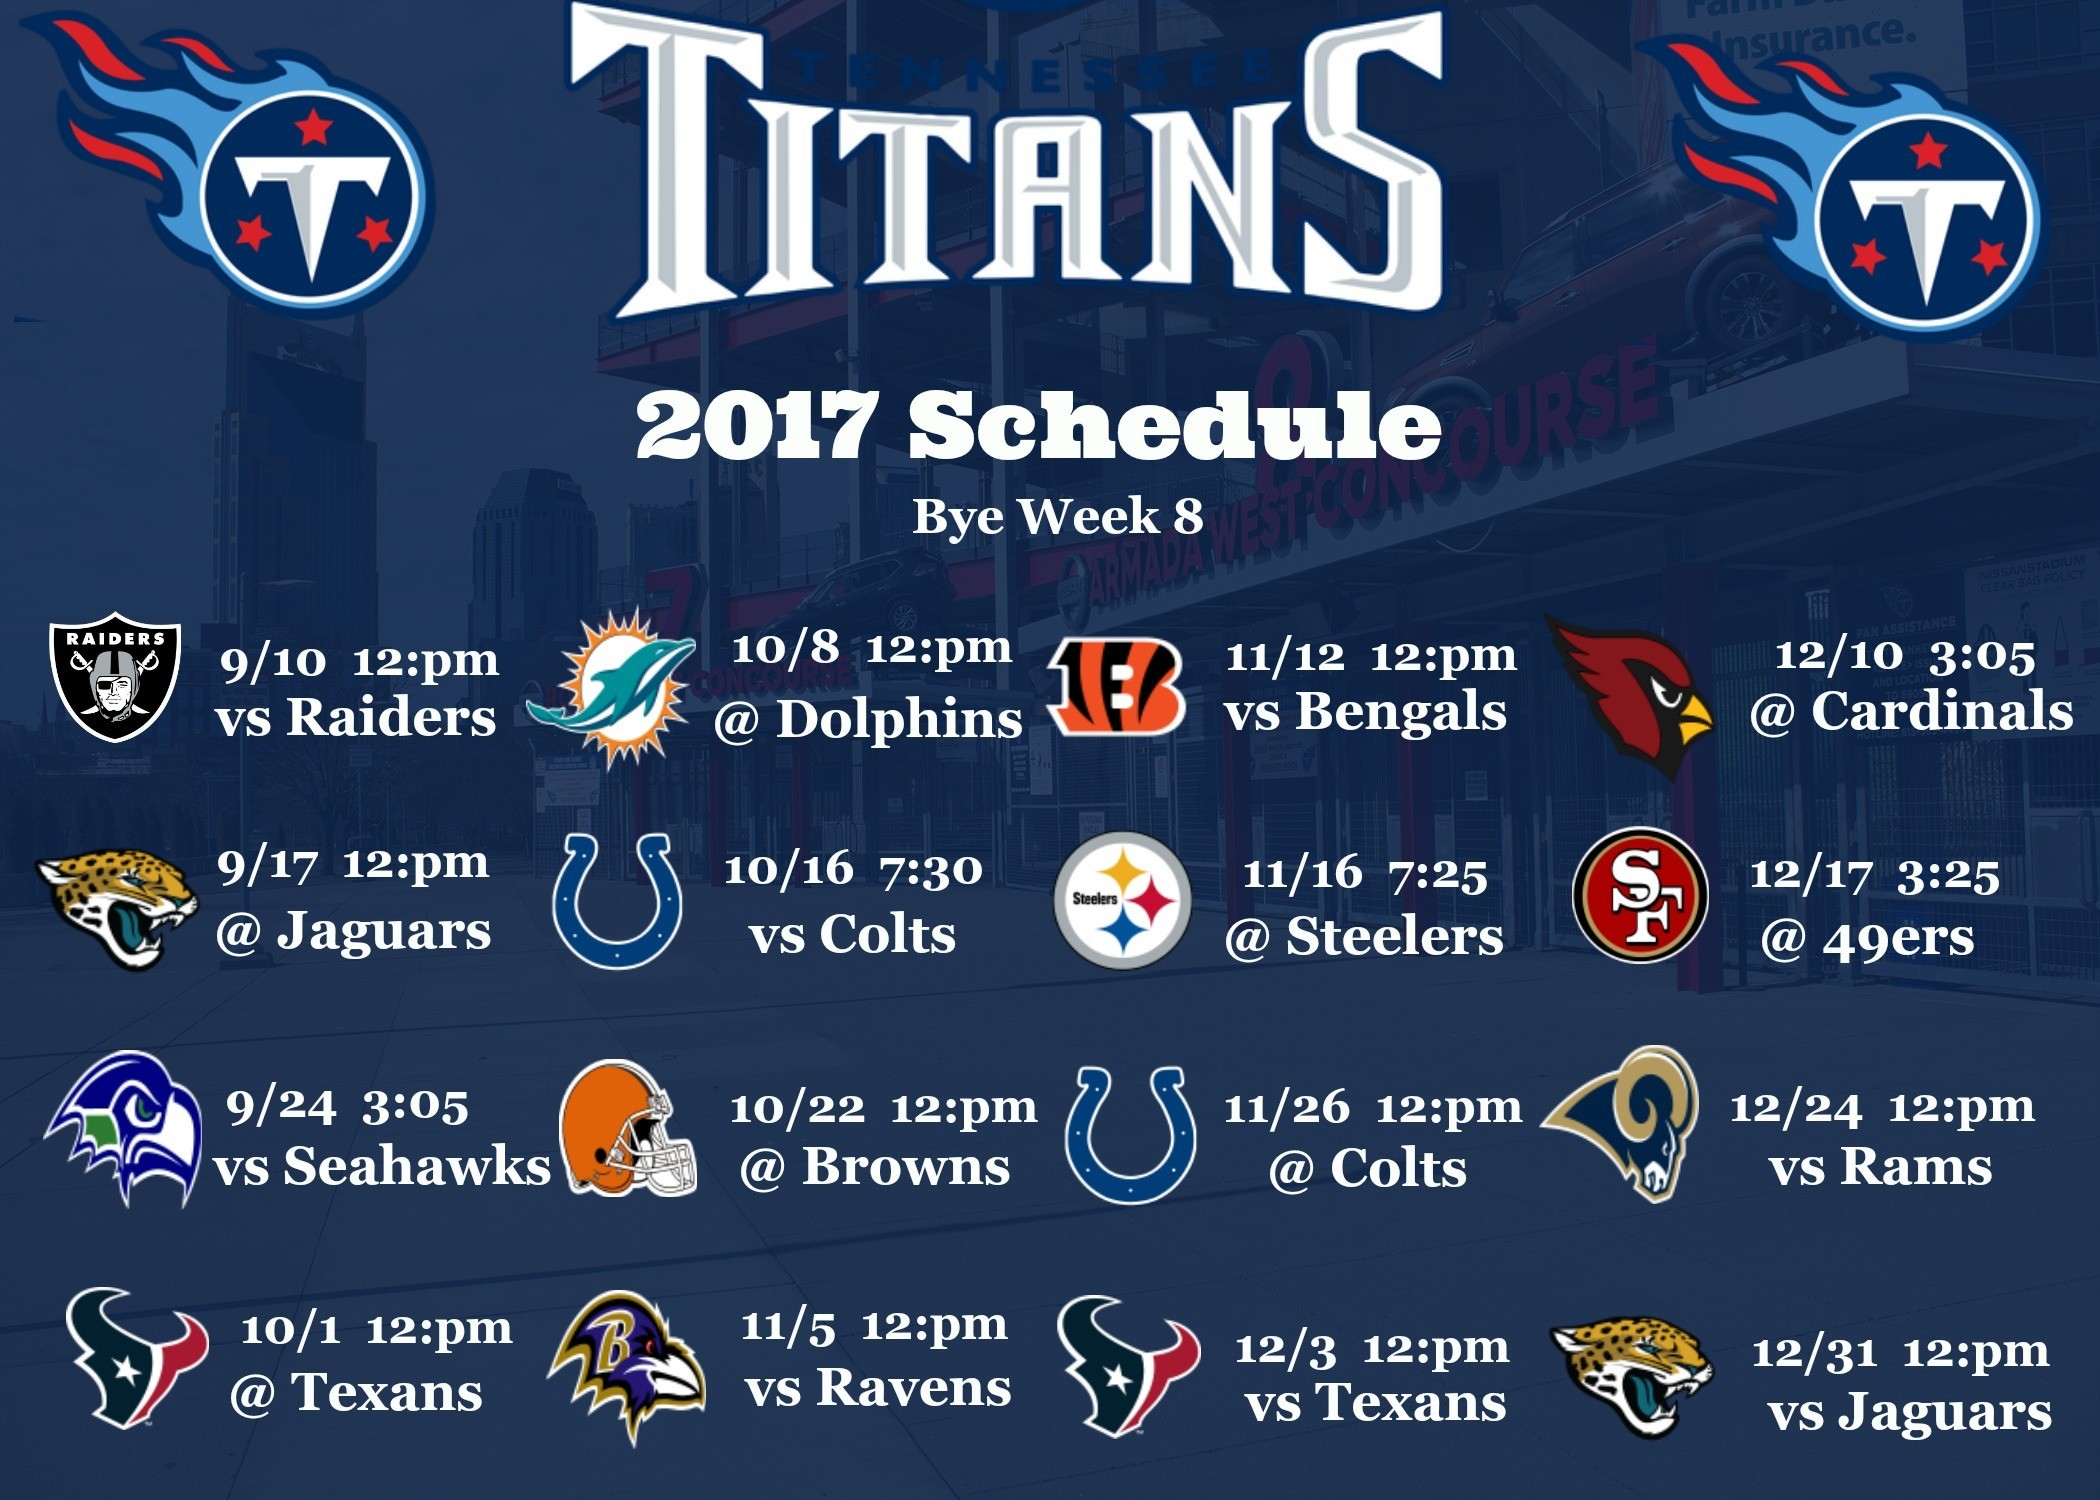 2100x1500  Tennessee Titans 2017 Schedule Wallpaper Download  http://www.nashvillesportsnews.com/